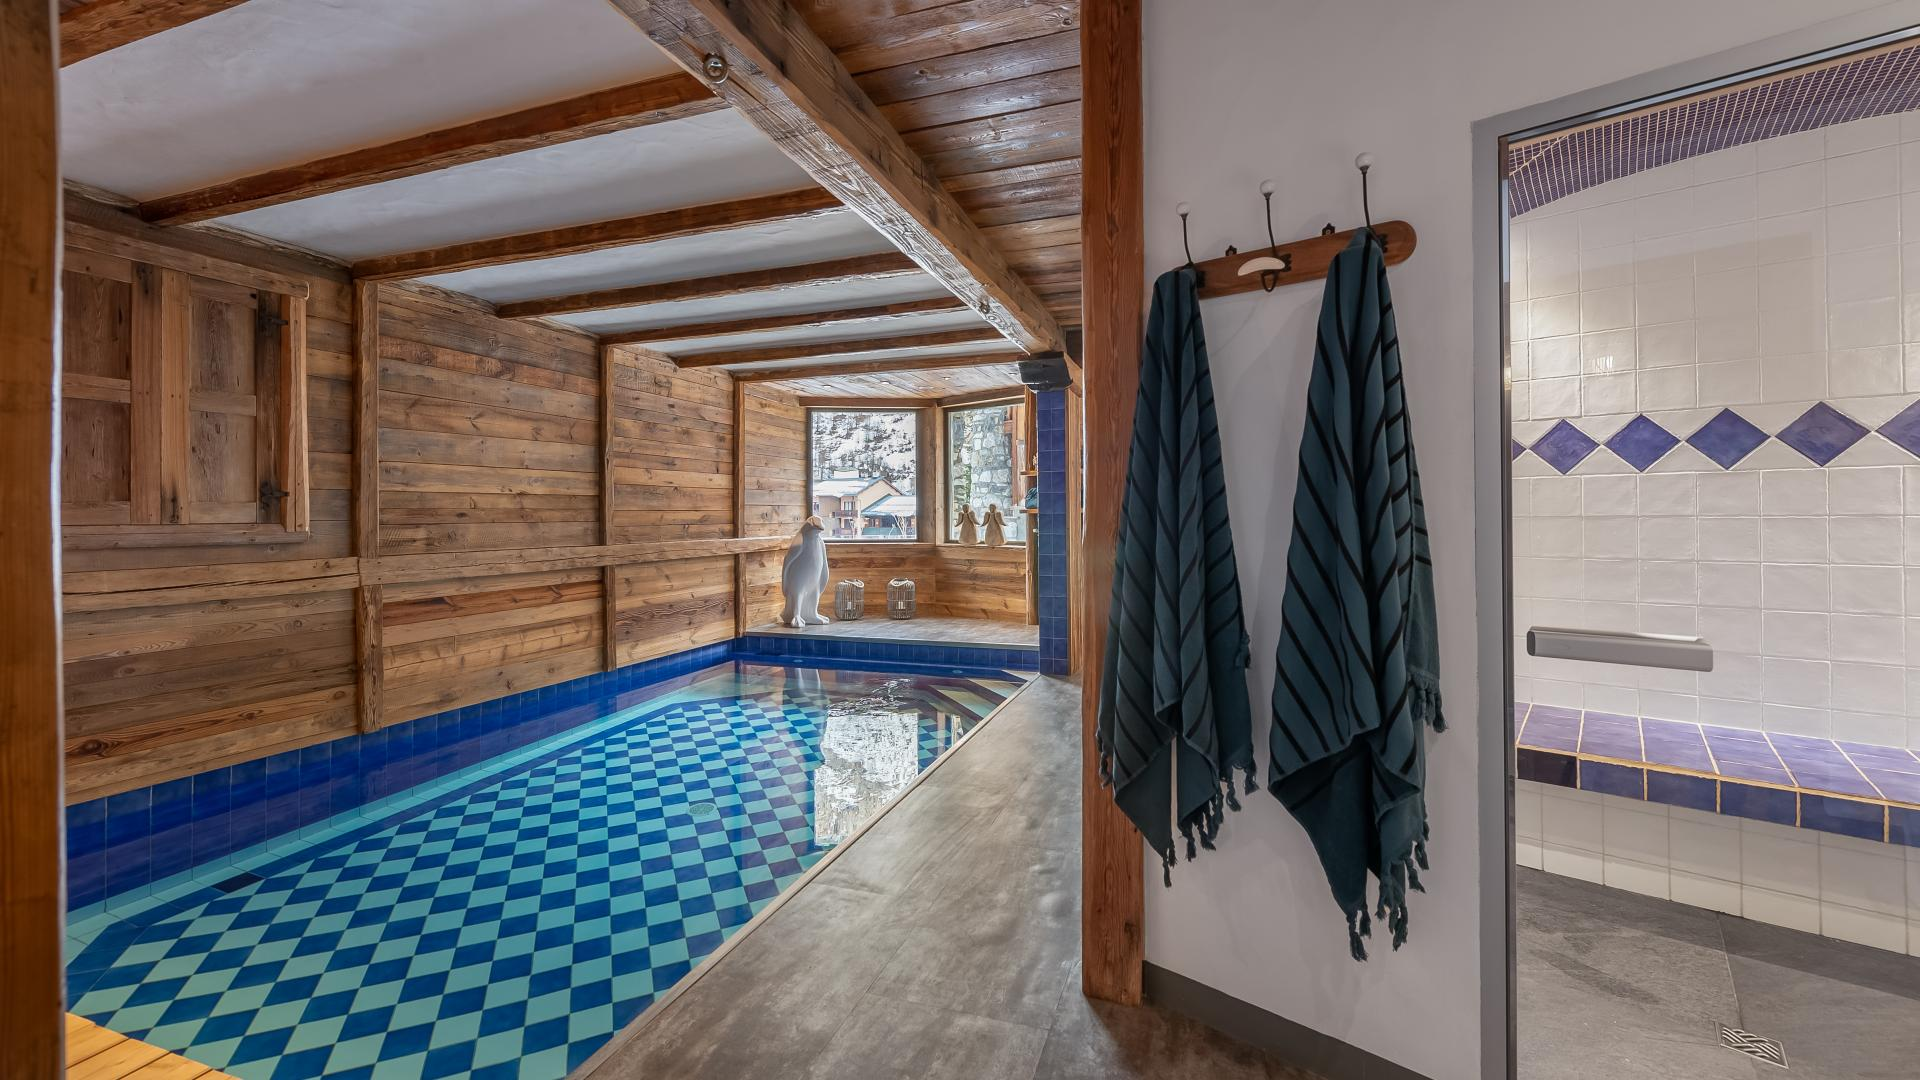 Chalet Pauline 3 - Location chalets Covarel - Val d'Isère Alpes - France - piscine